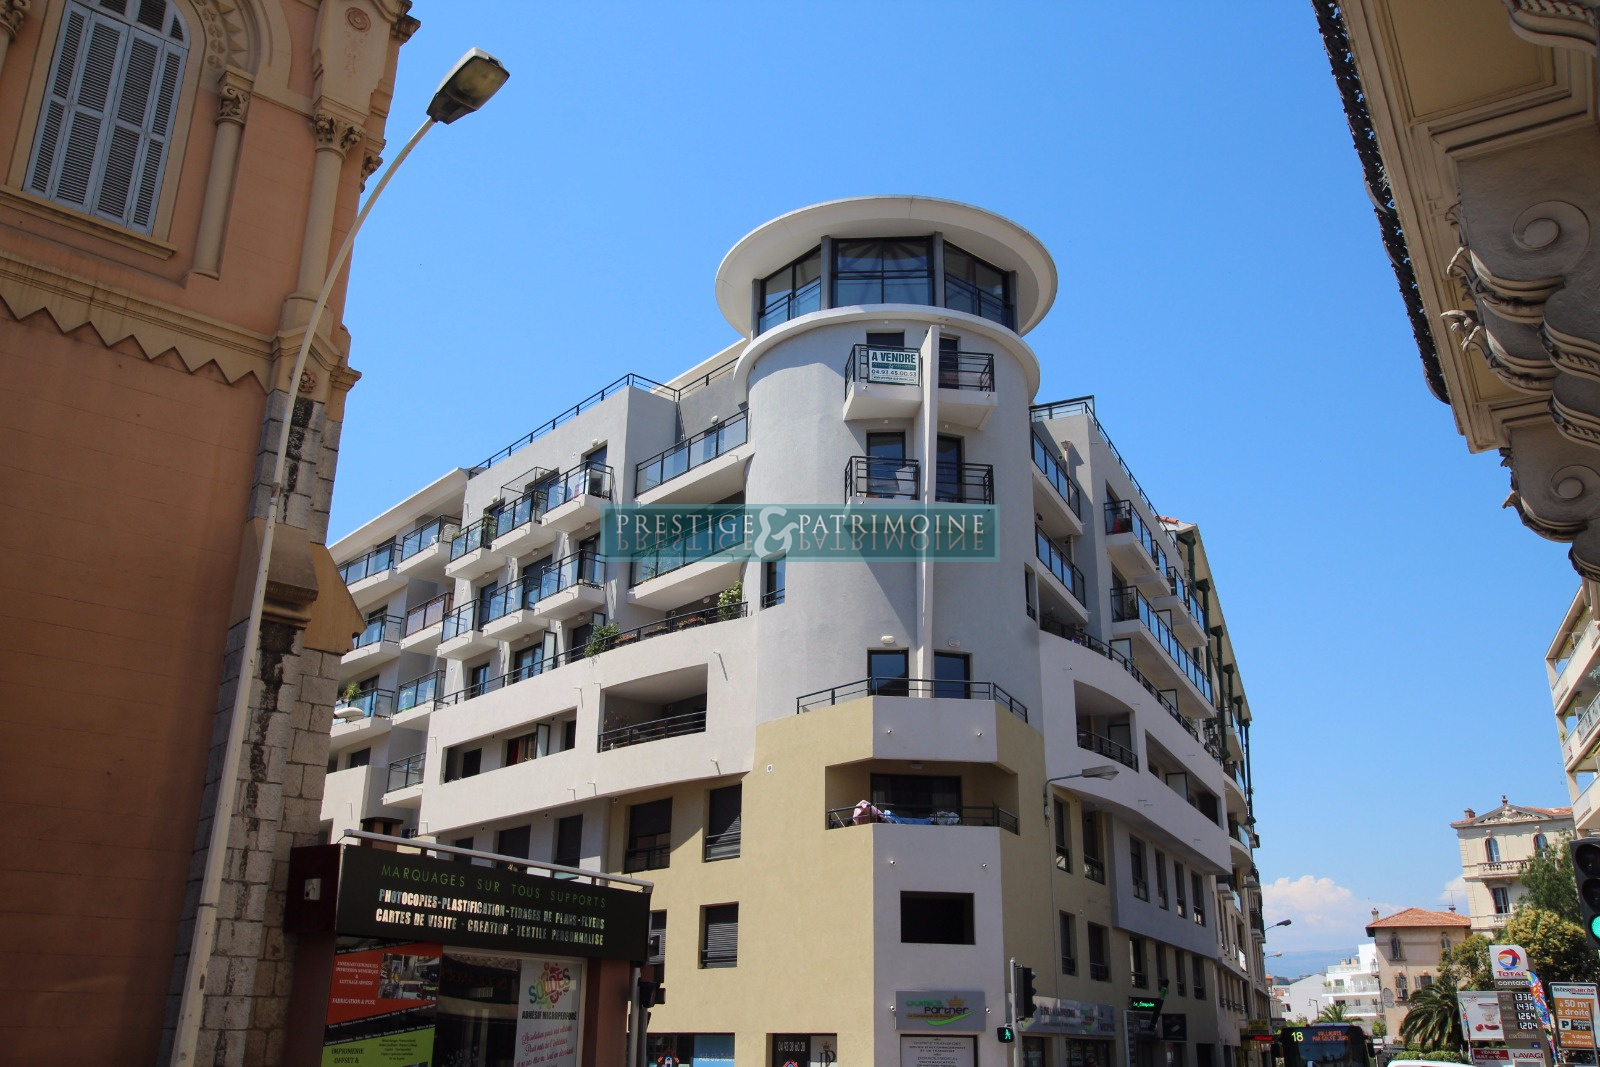 Vente Immobilier Professionnel Local commercial Cannes (06400)